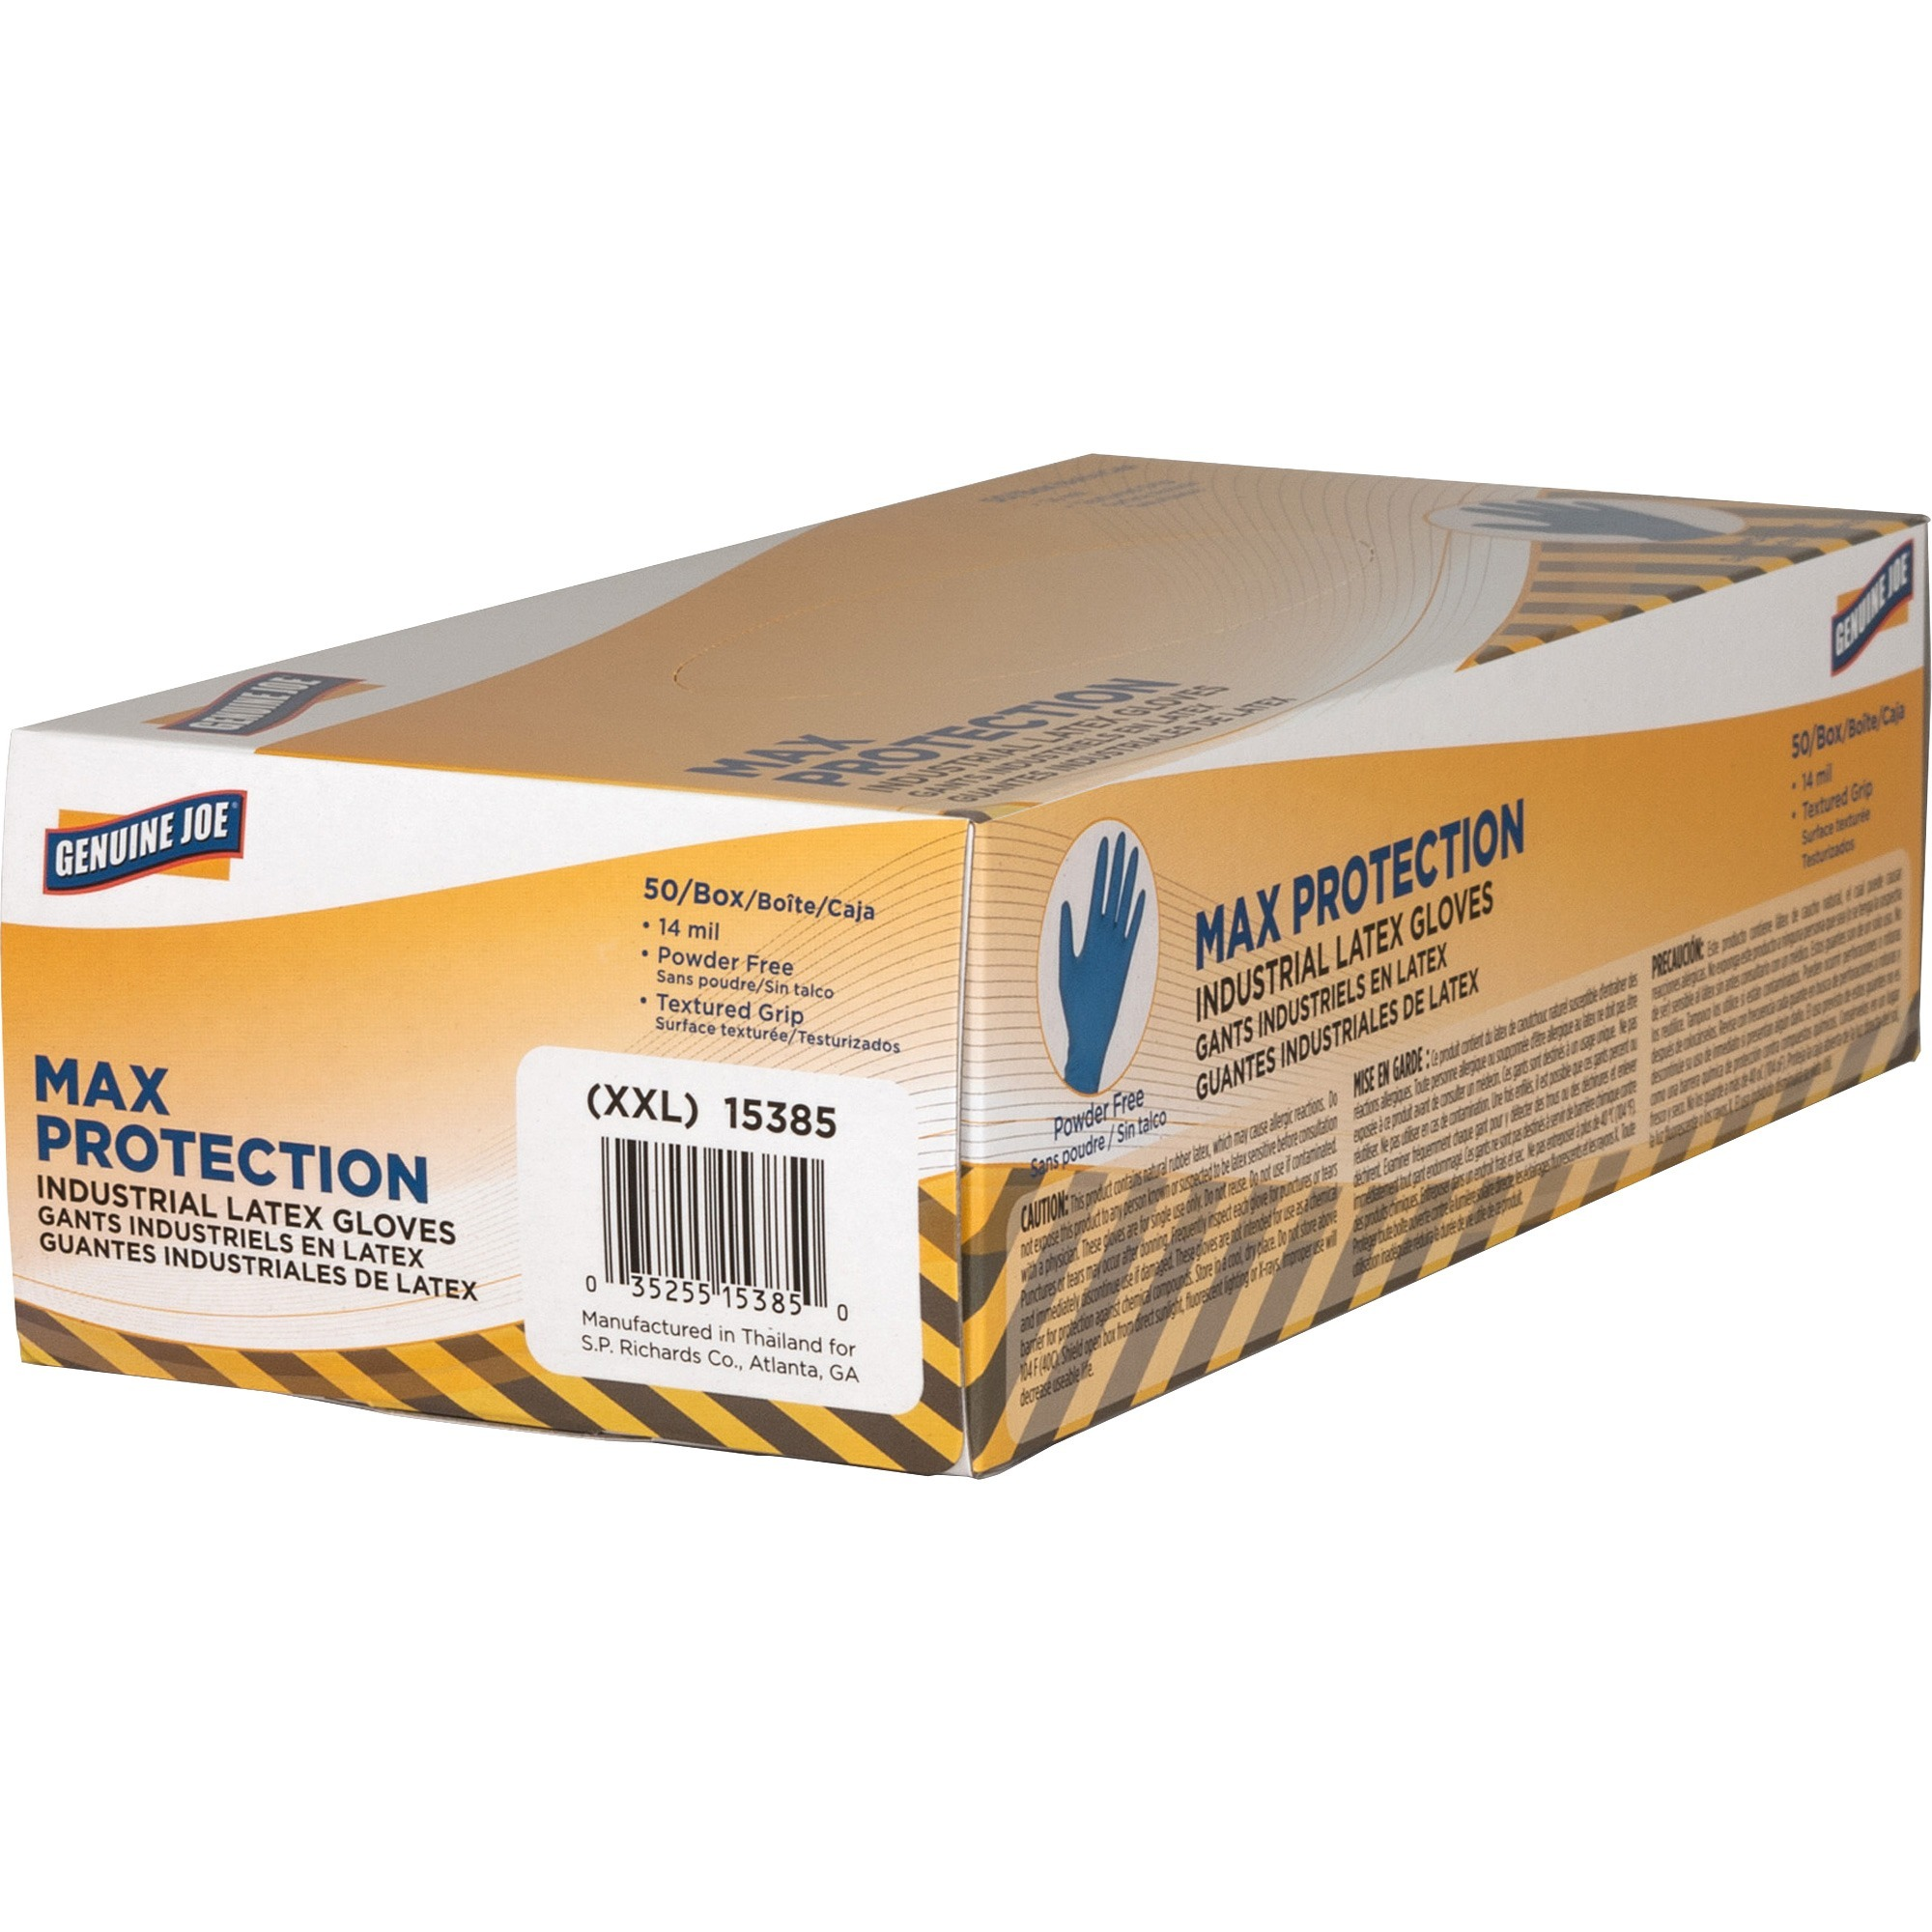 Genuine Joe 14 Mil Max Protection Ind Latex Gloves